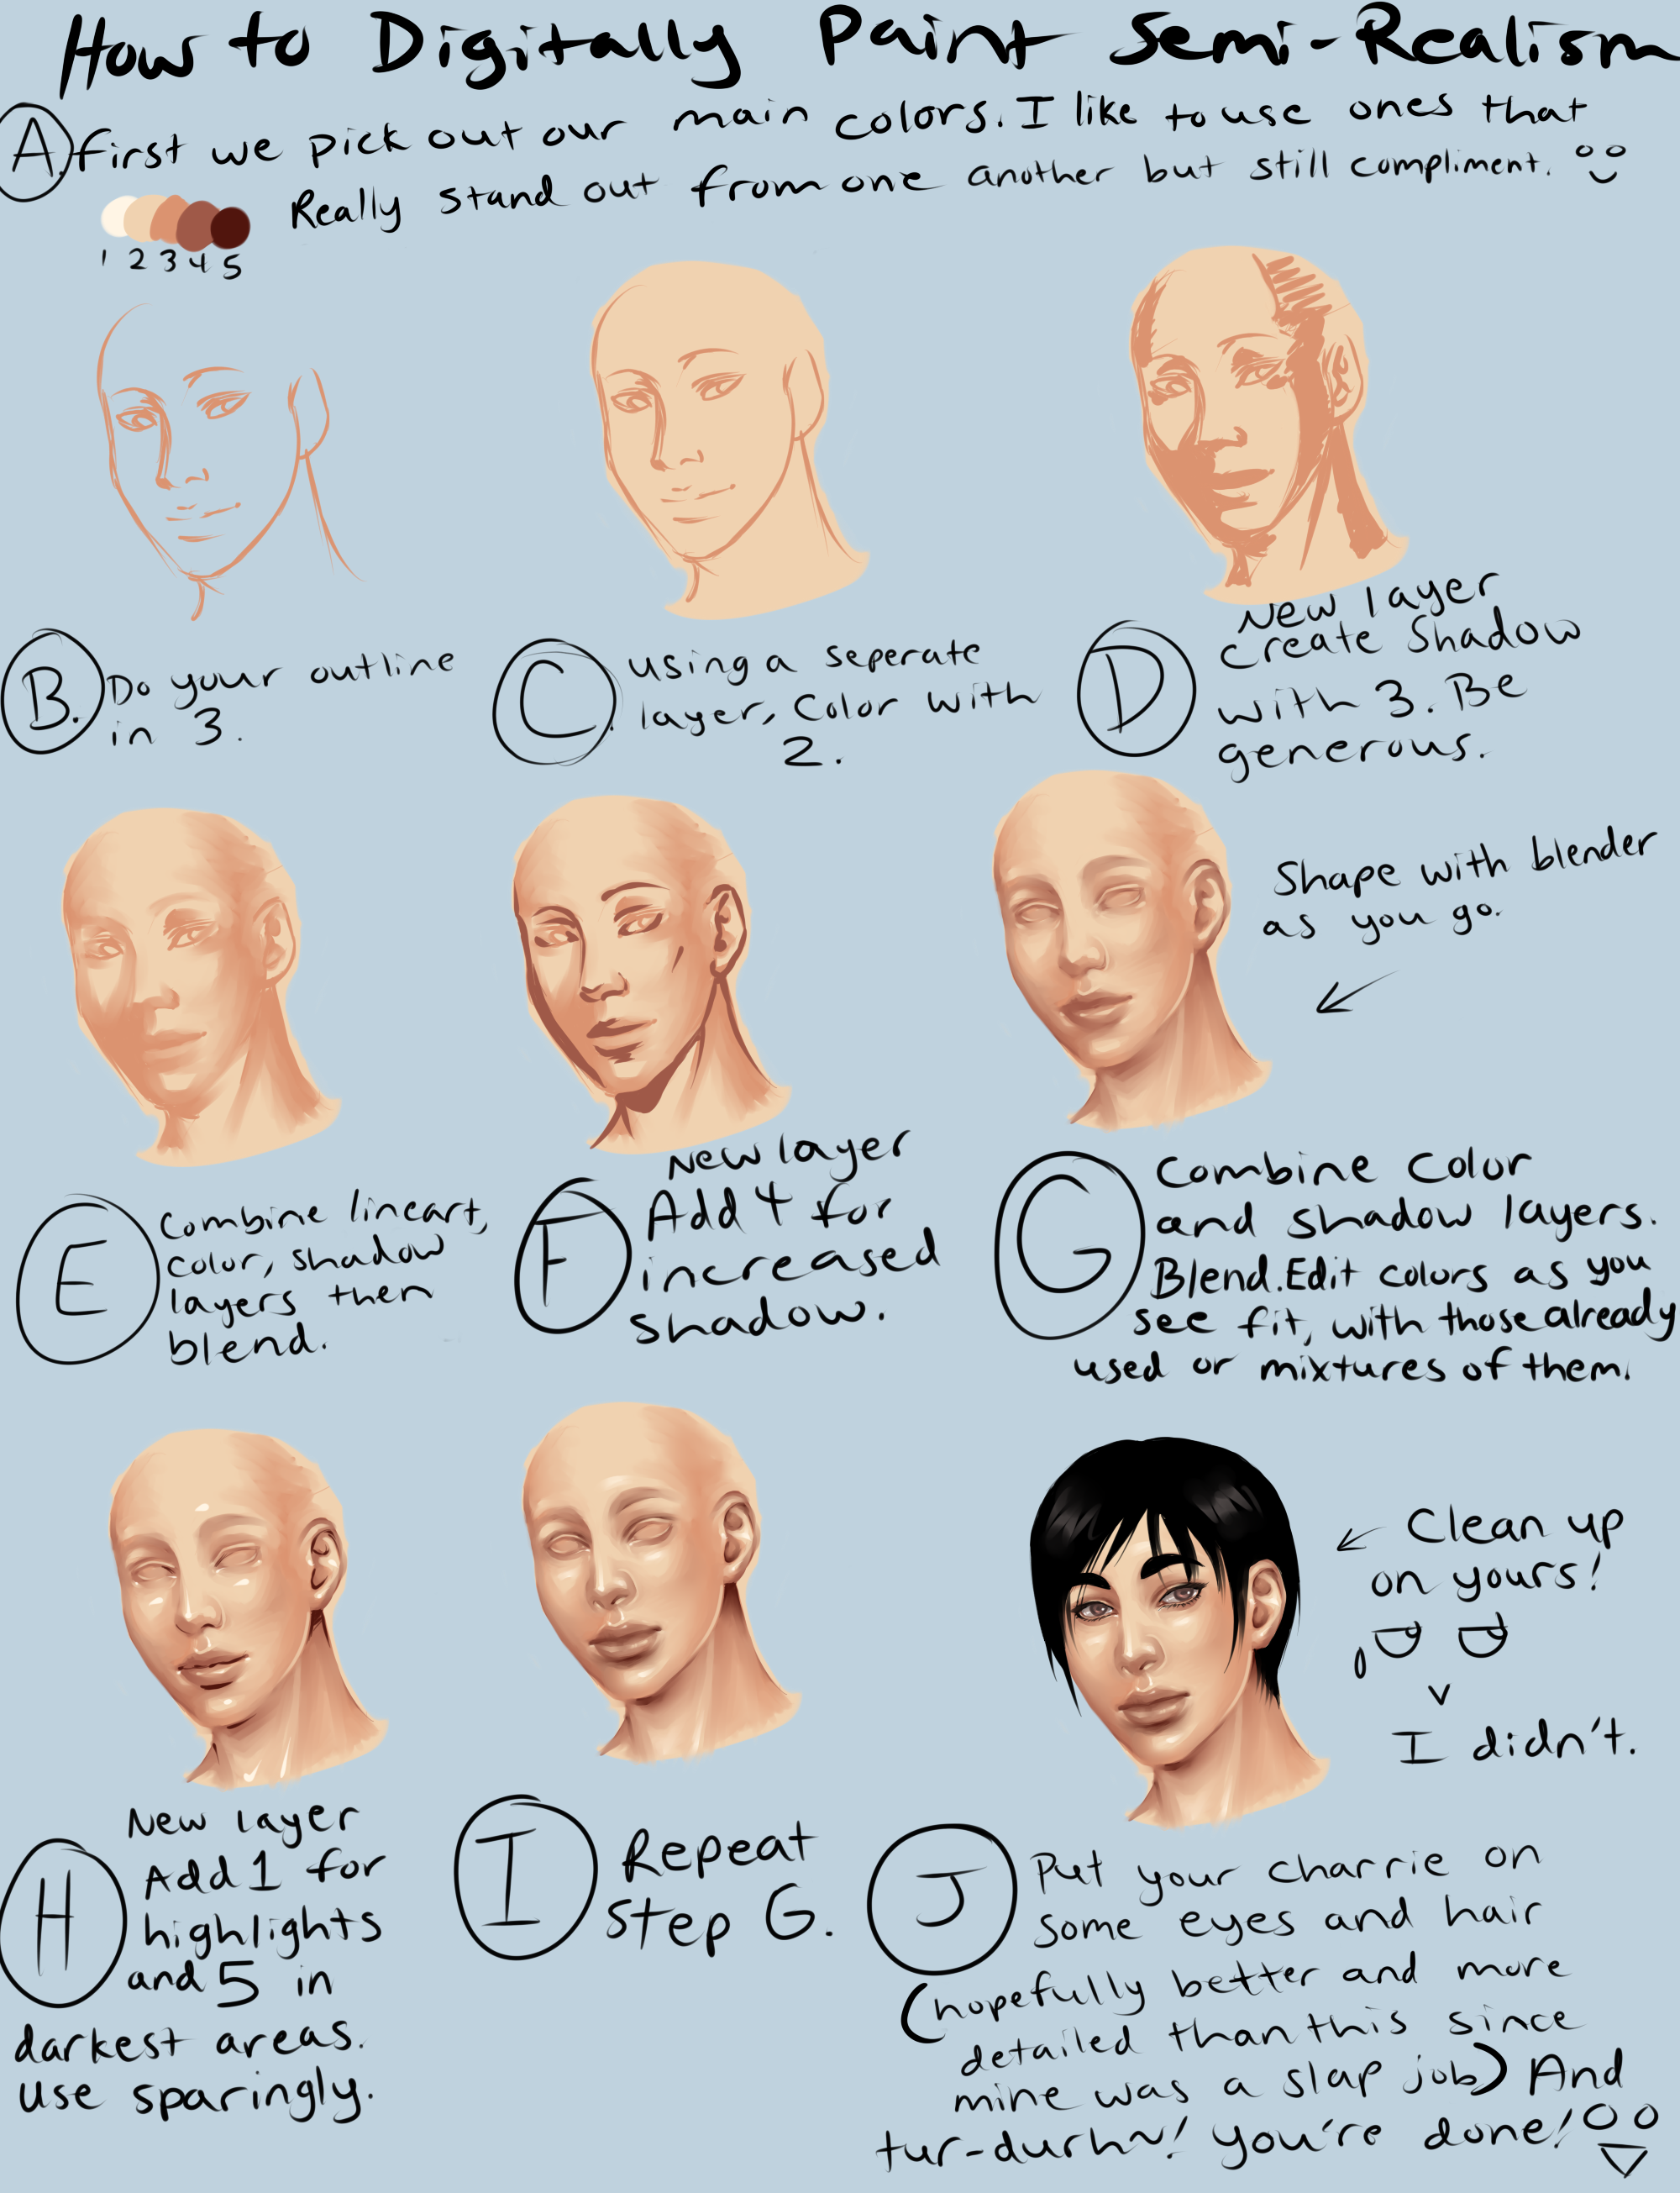 Digital Semi Realism Skin Tutorial By Thecomicstream On